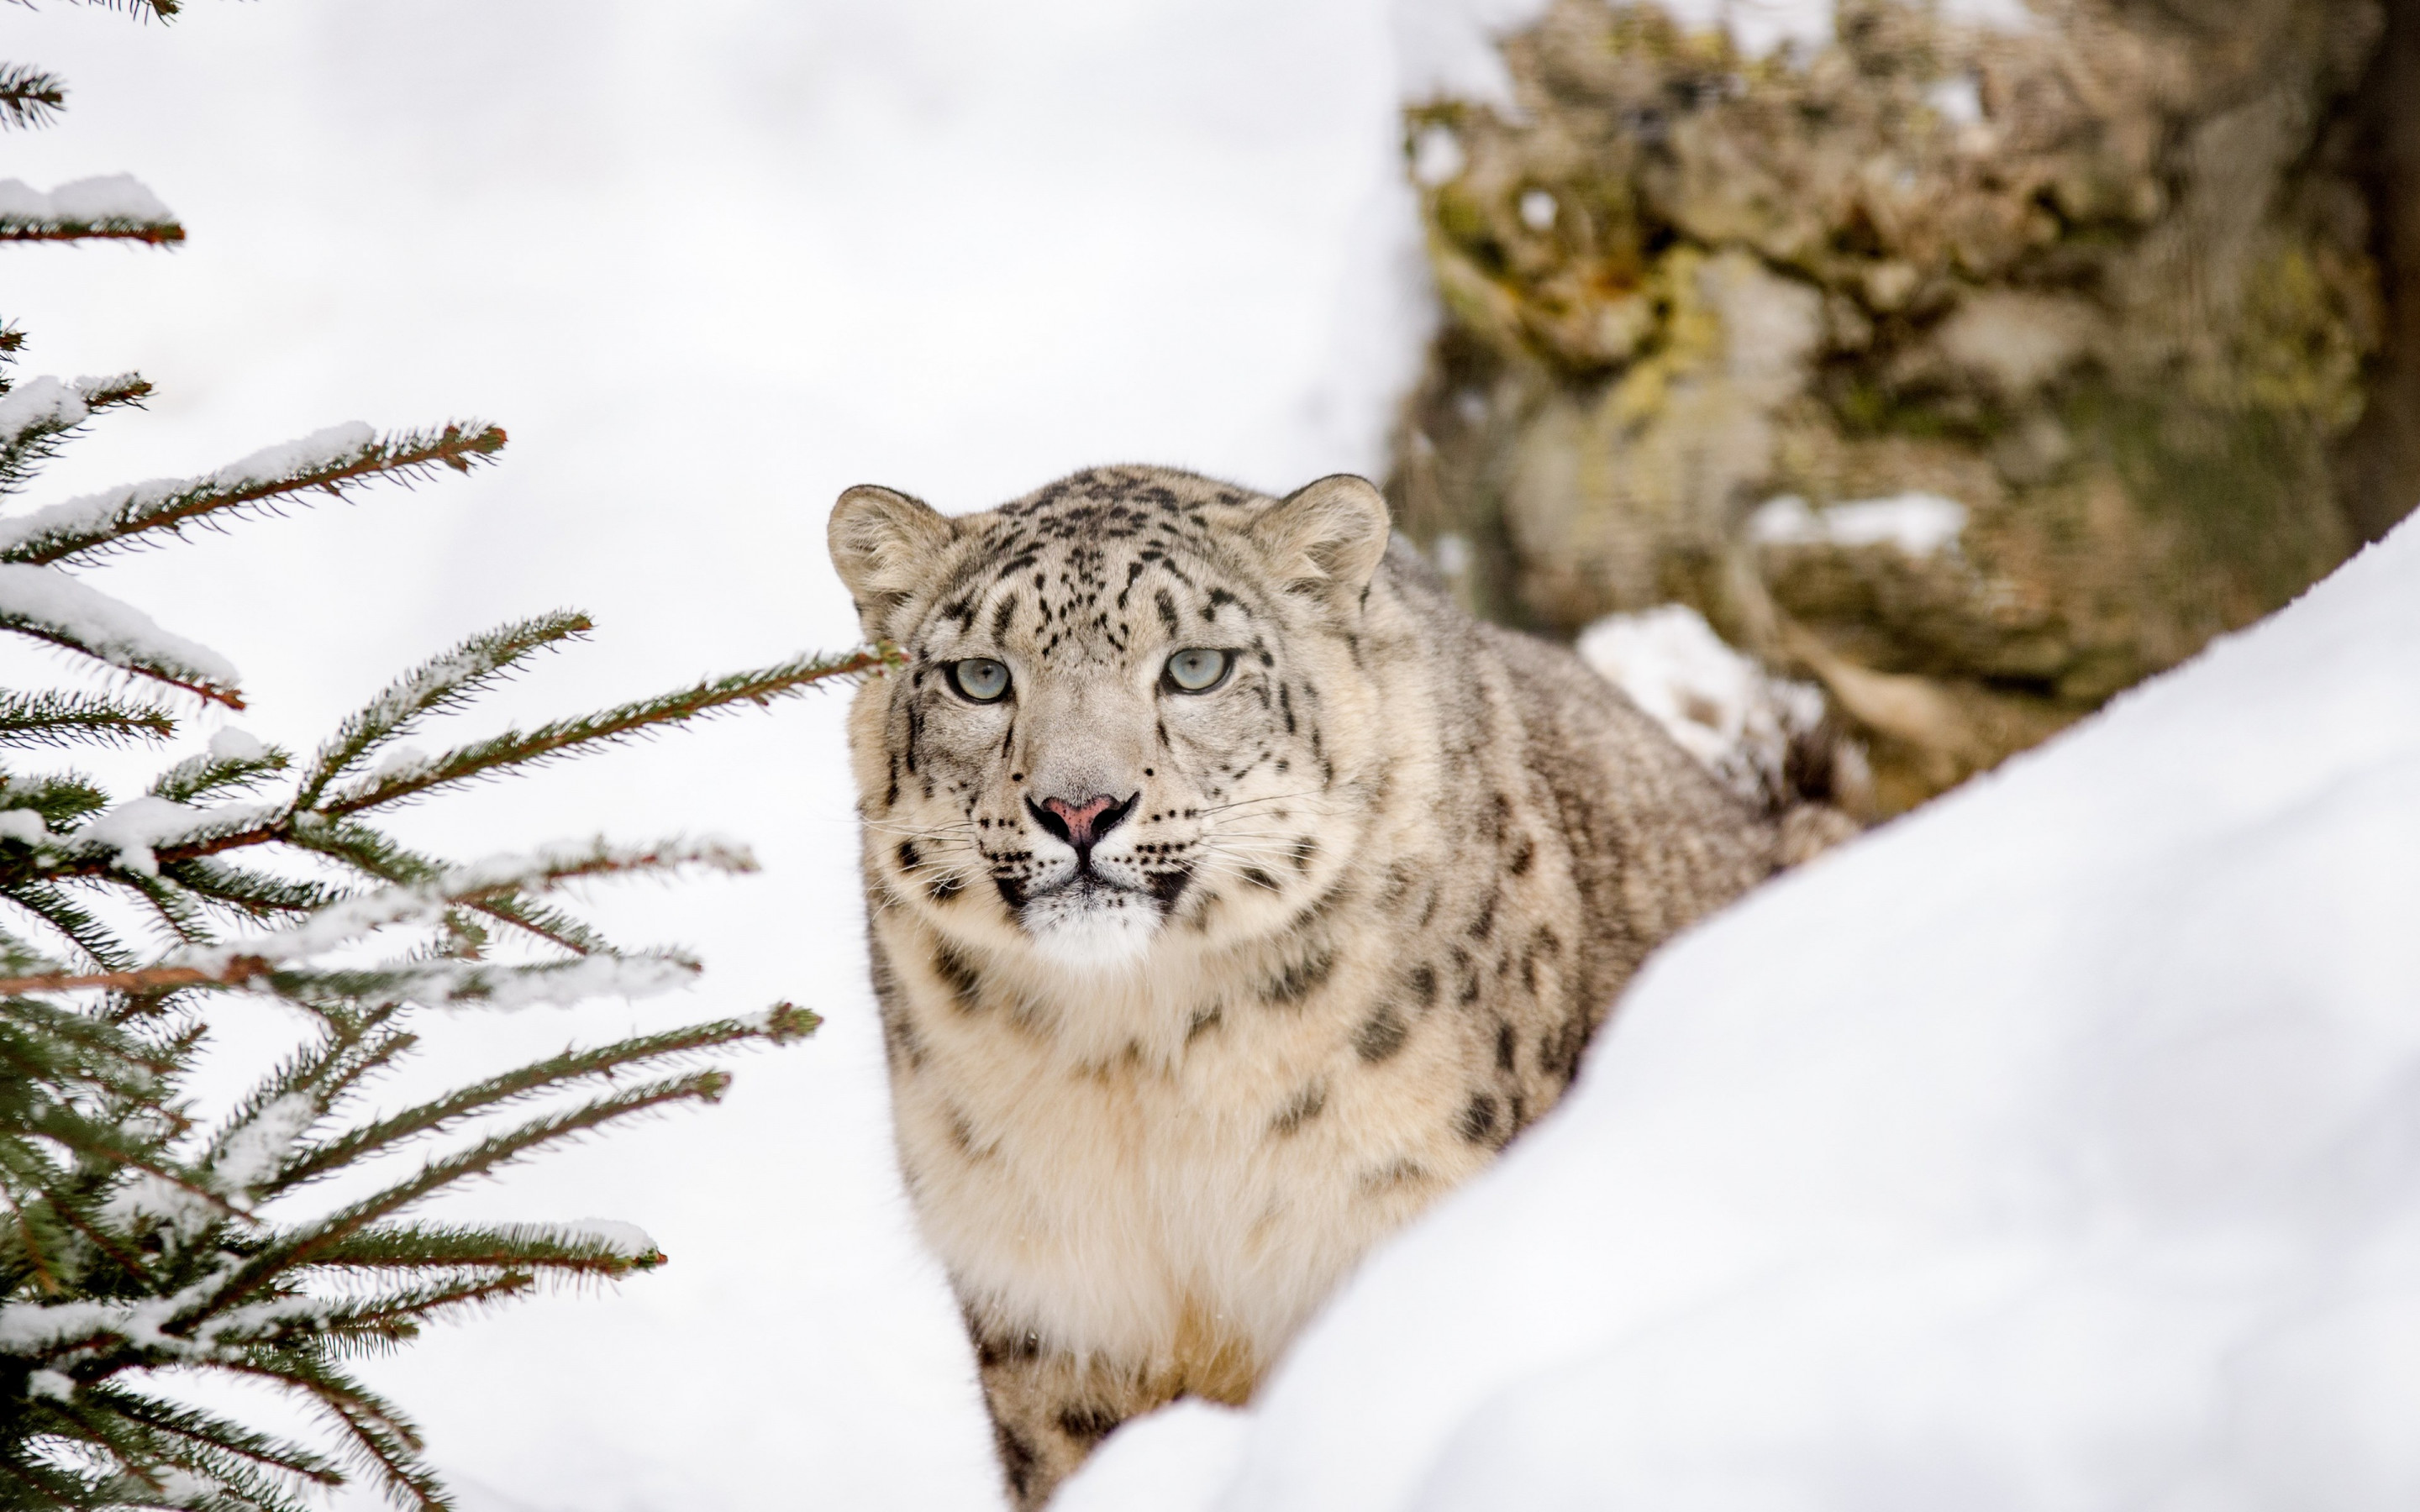 Snow leopard | 2880x1800 wallpaper